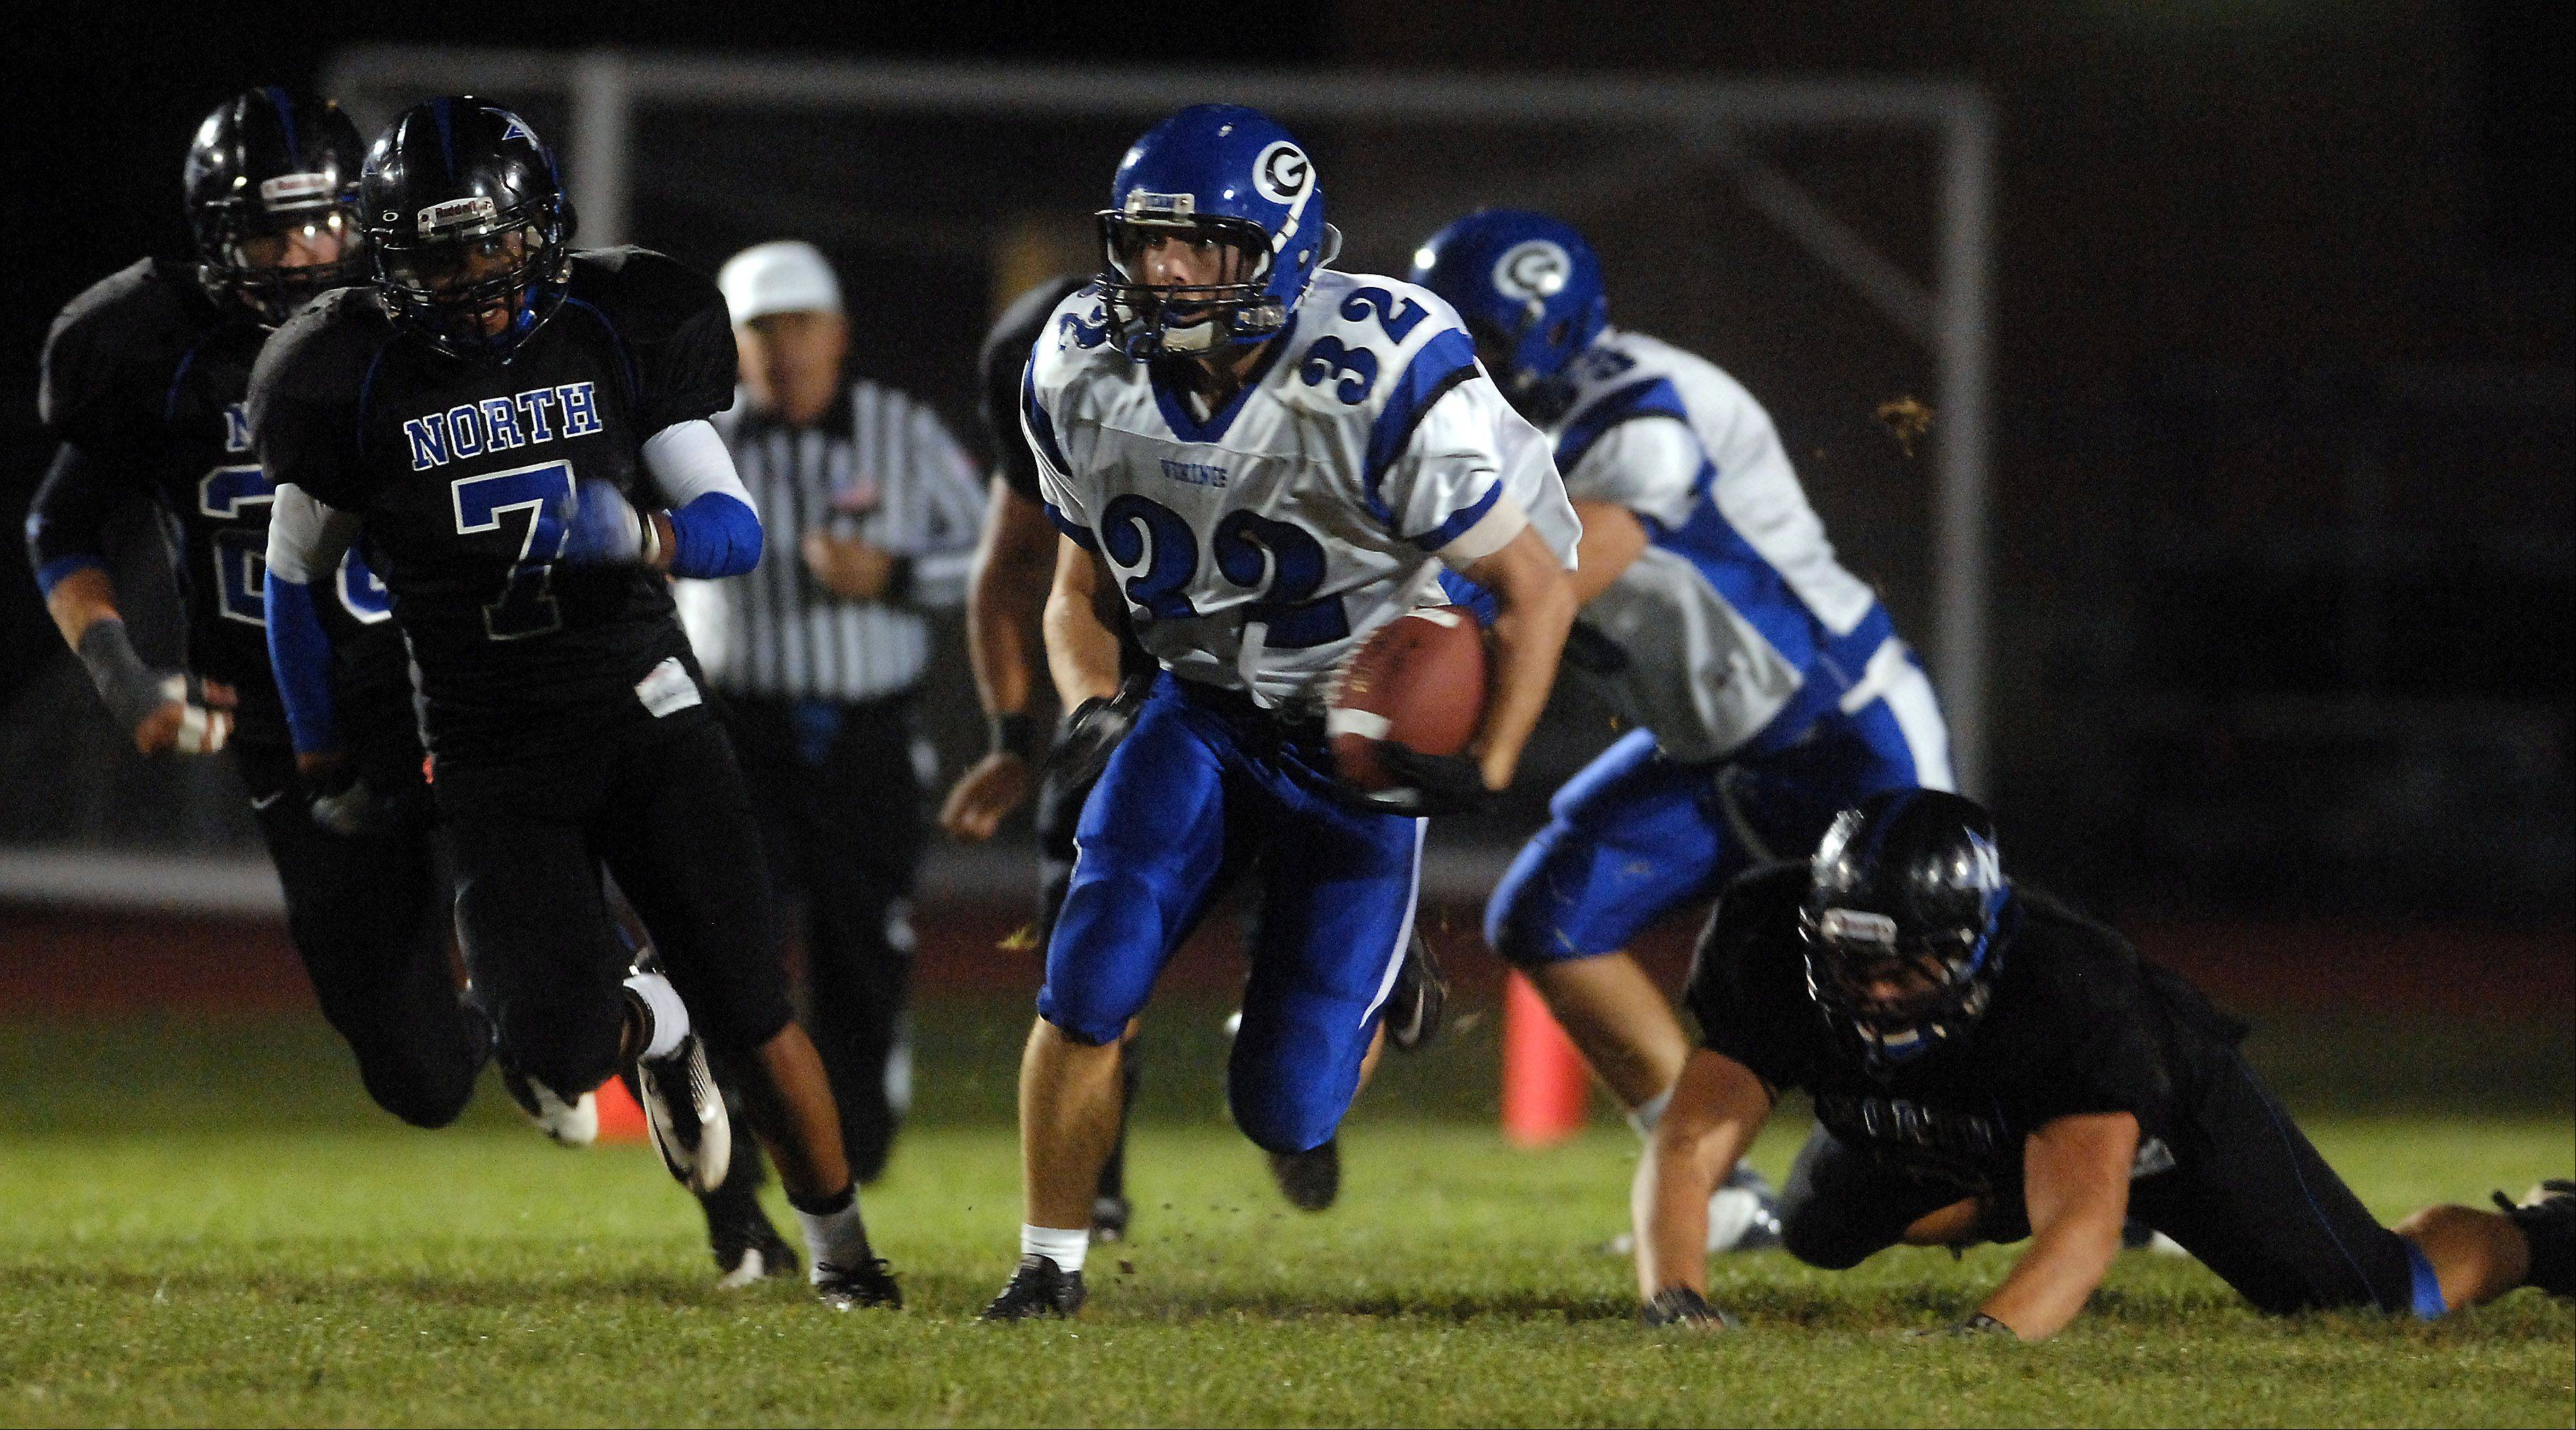 Geneva�s Bobby Hess finds a seam up the middle against St. Charles North during Friday�s game at St. Charles North.